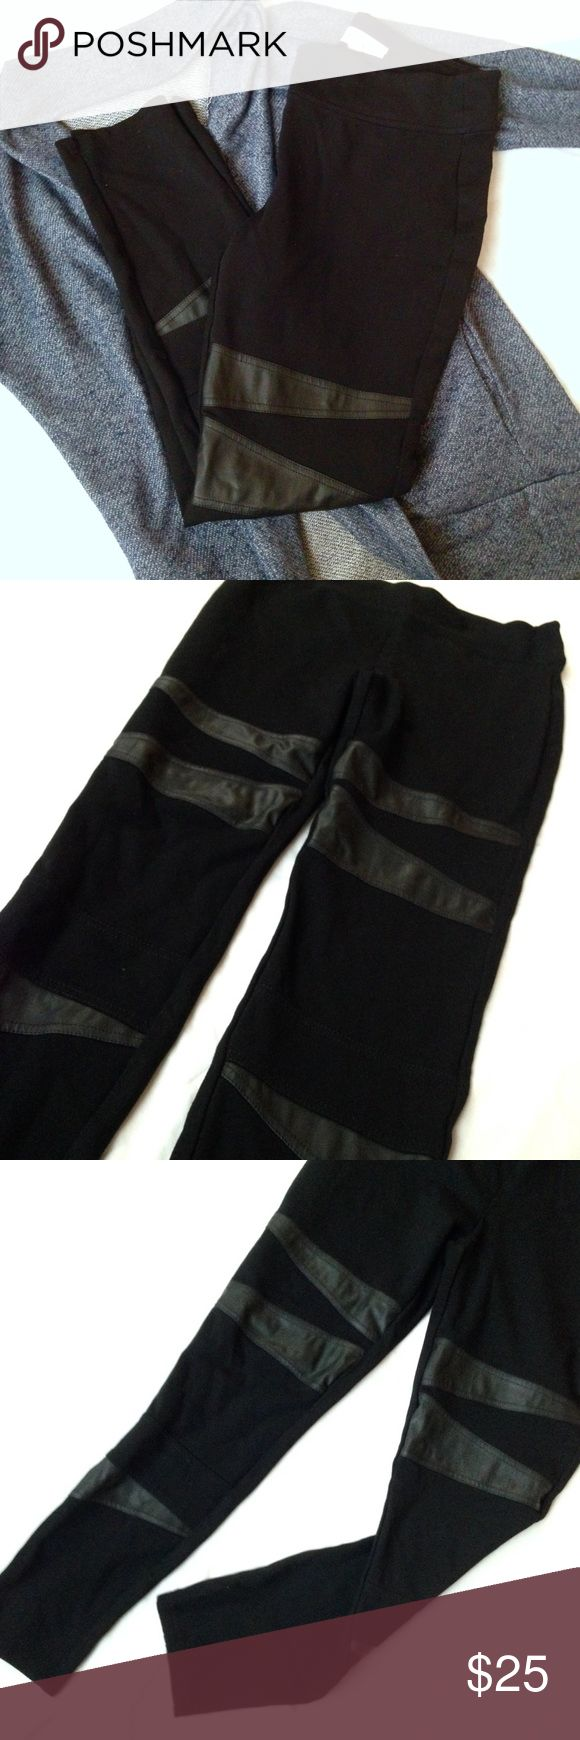 "Vince Camuto black leggings Thick black leggings with trendy faux leather embellishments. Gives an edgy look to your outfit, and as a plus: doesn't let your panties show through! Super comfortable, feels like you're wearing fashionable workout wear. Waist: 15"" with stretch. Length: 35"". Inseam: 27"". ❣Make an offer!❣❌No trades!❌ Two by Vince Camuto Pants Leggings"